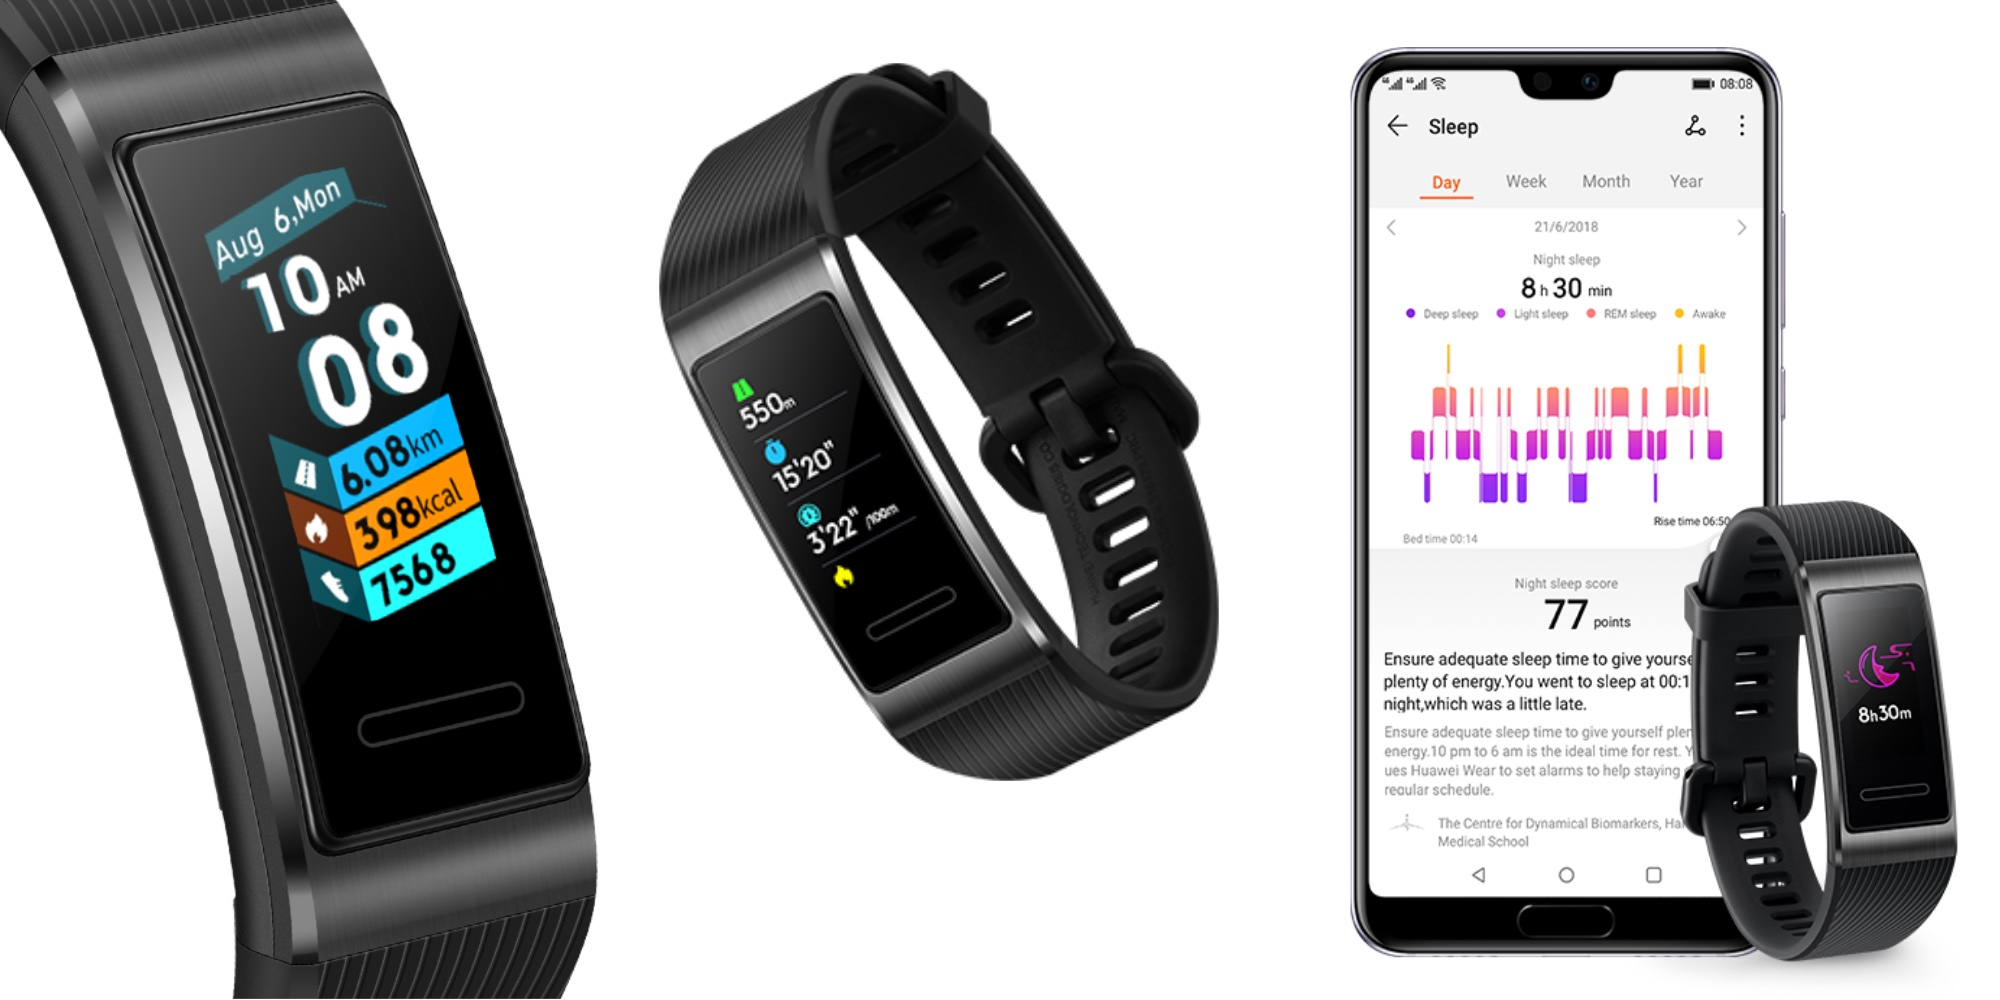 Built-in GPS & 17-day battery life headline Huawei's $60 Band 3 Pro Fitness Tracker (All-time low)